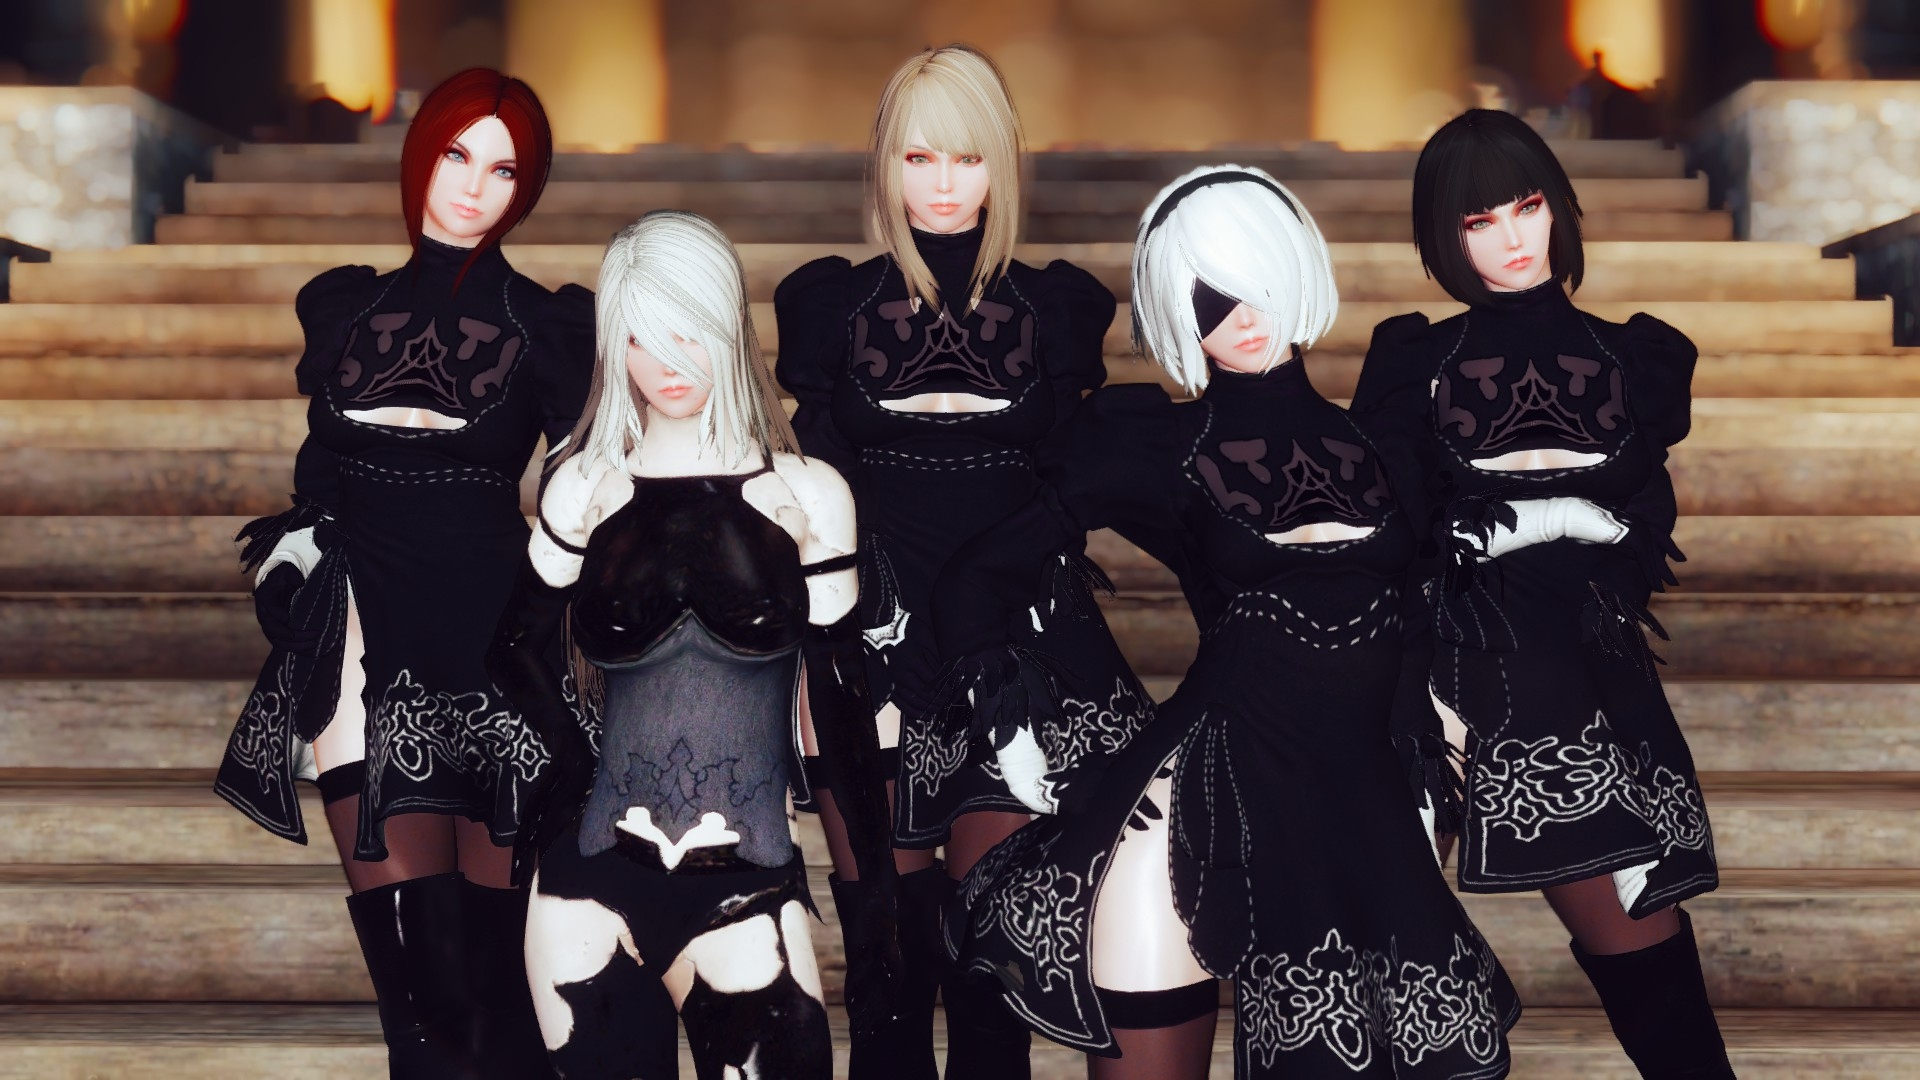 GK YoRHa Followers Dark Elf 2 L - onigiridaisuki | ello